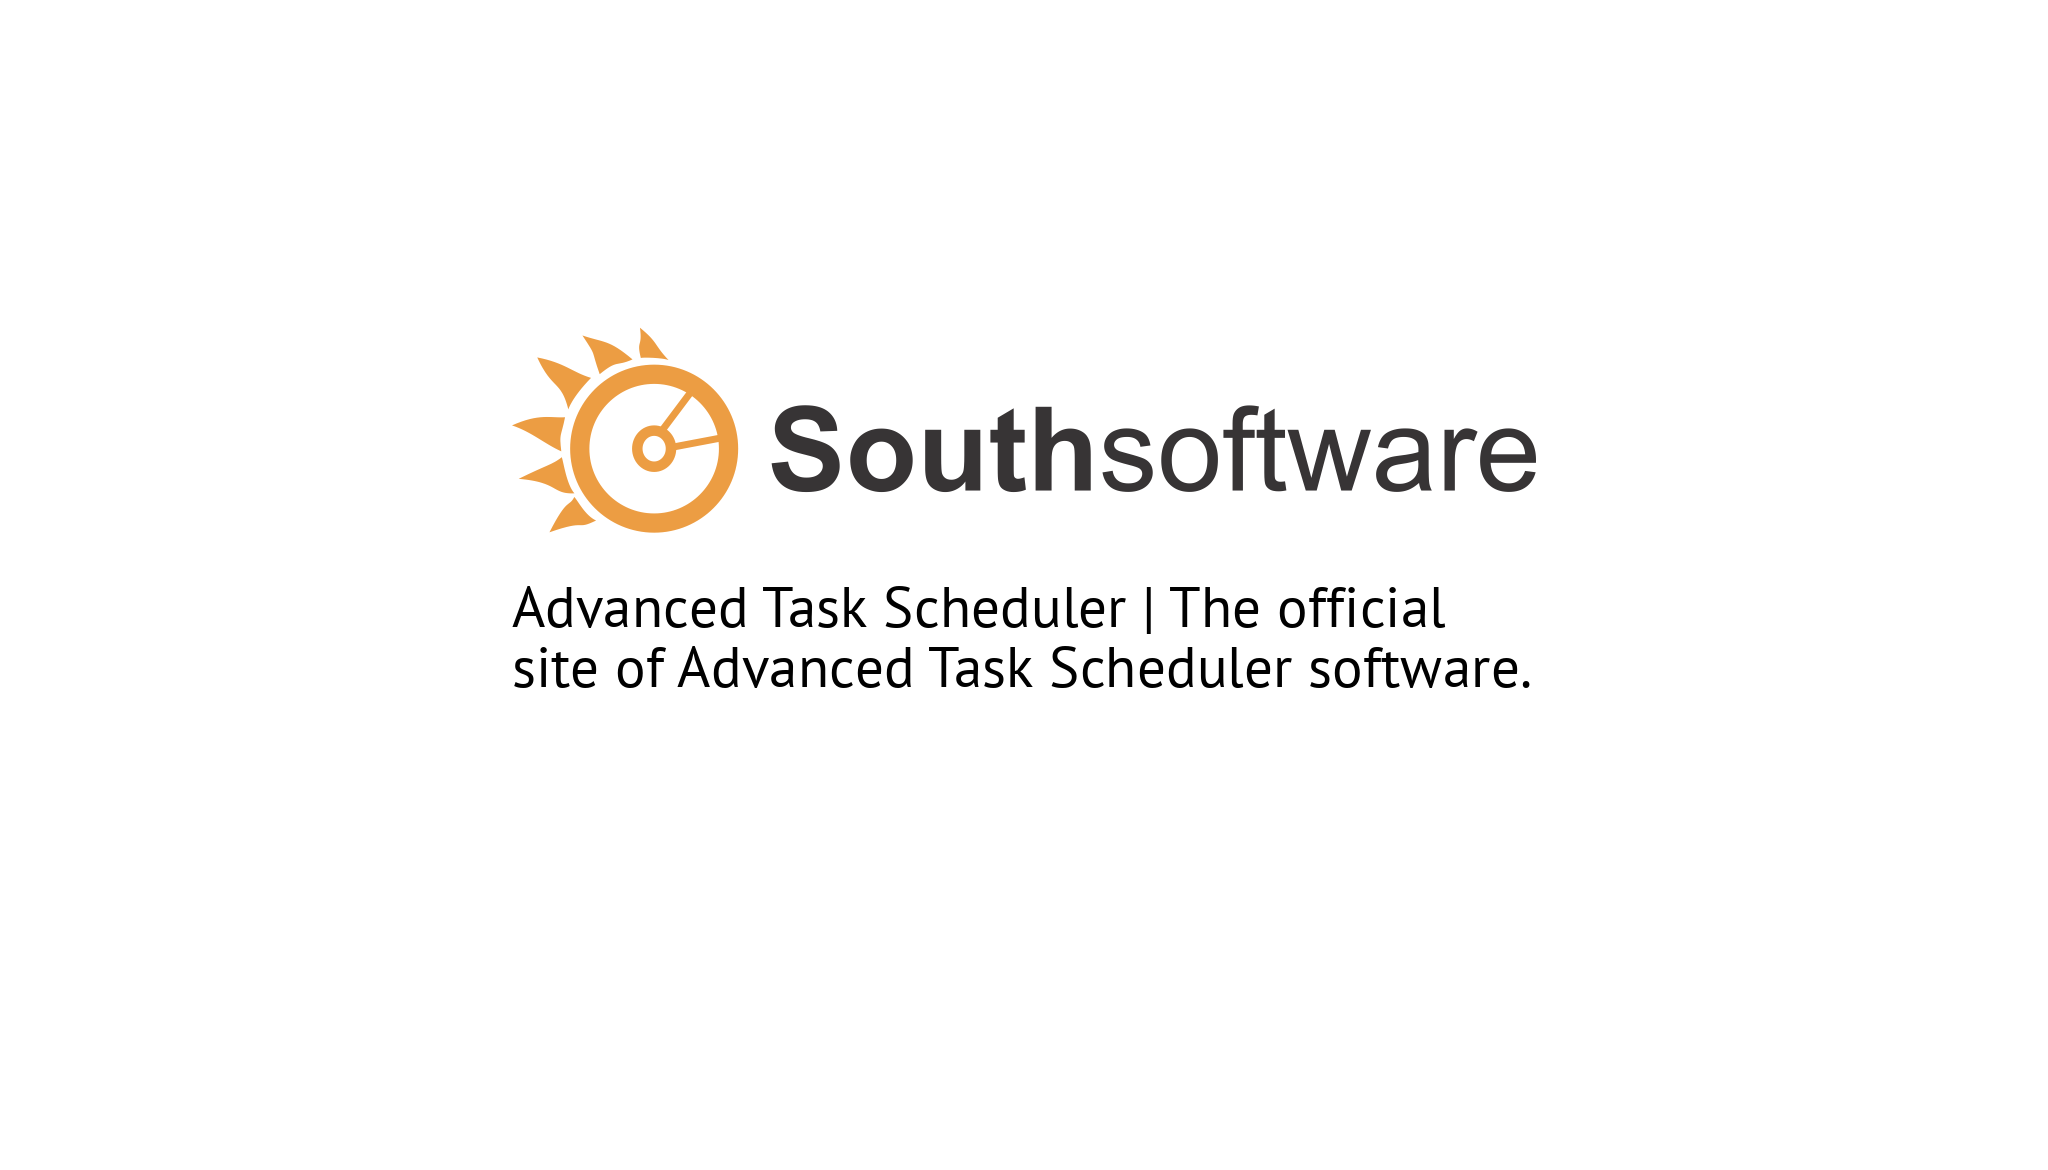 Advanced Task Scheduler | The official site of Advanced Task